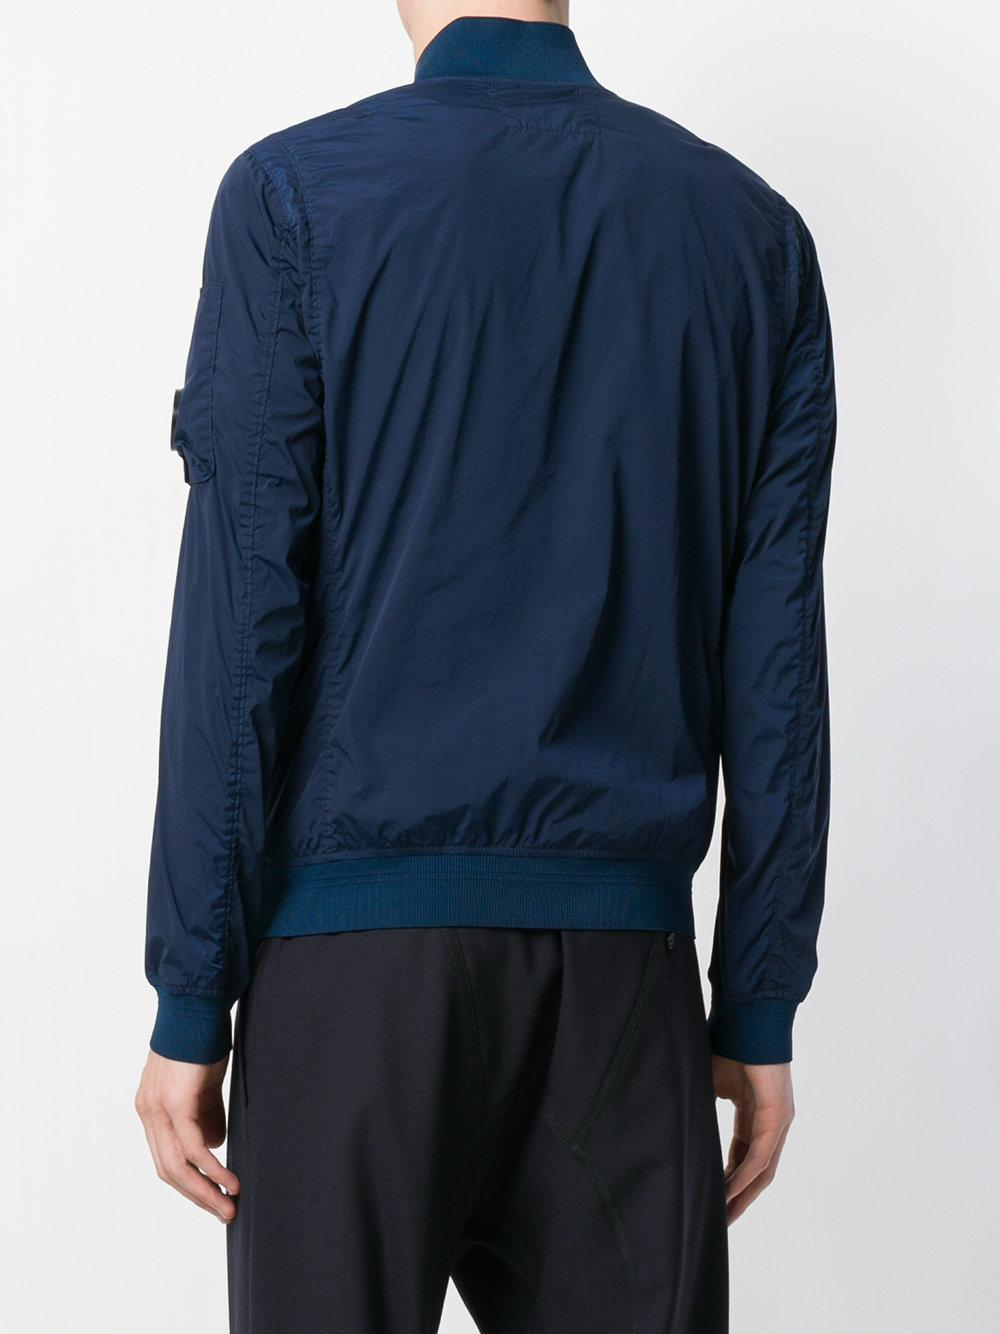 C P Company Cotton Nycra Military Bomber Jacket in Blue for Men